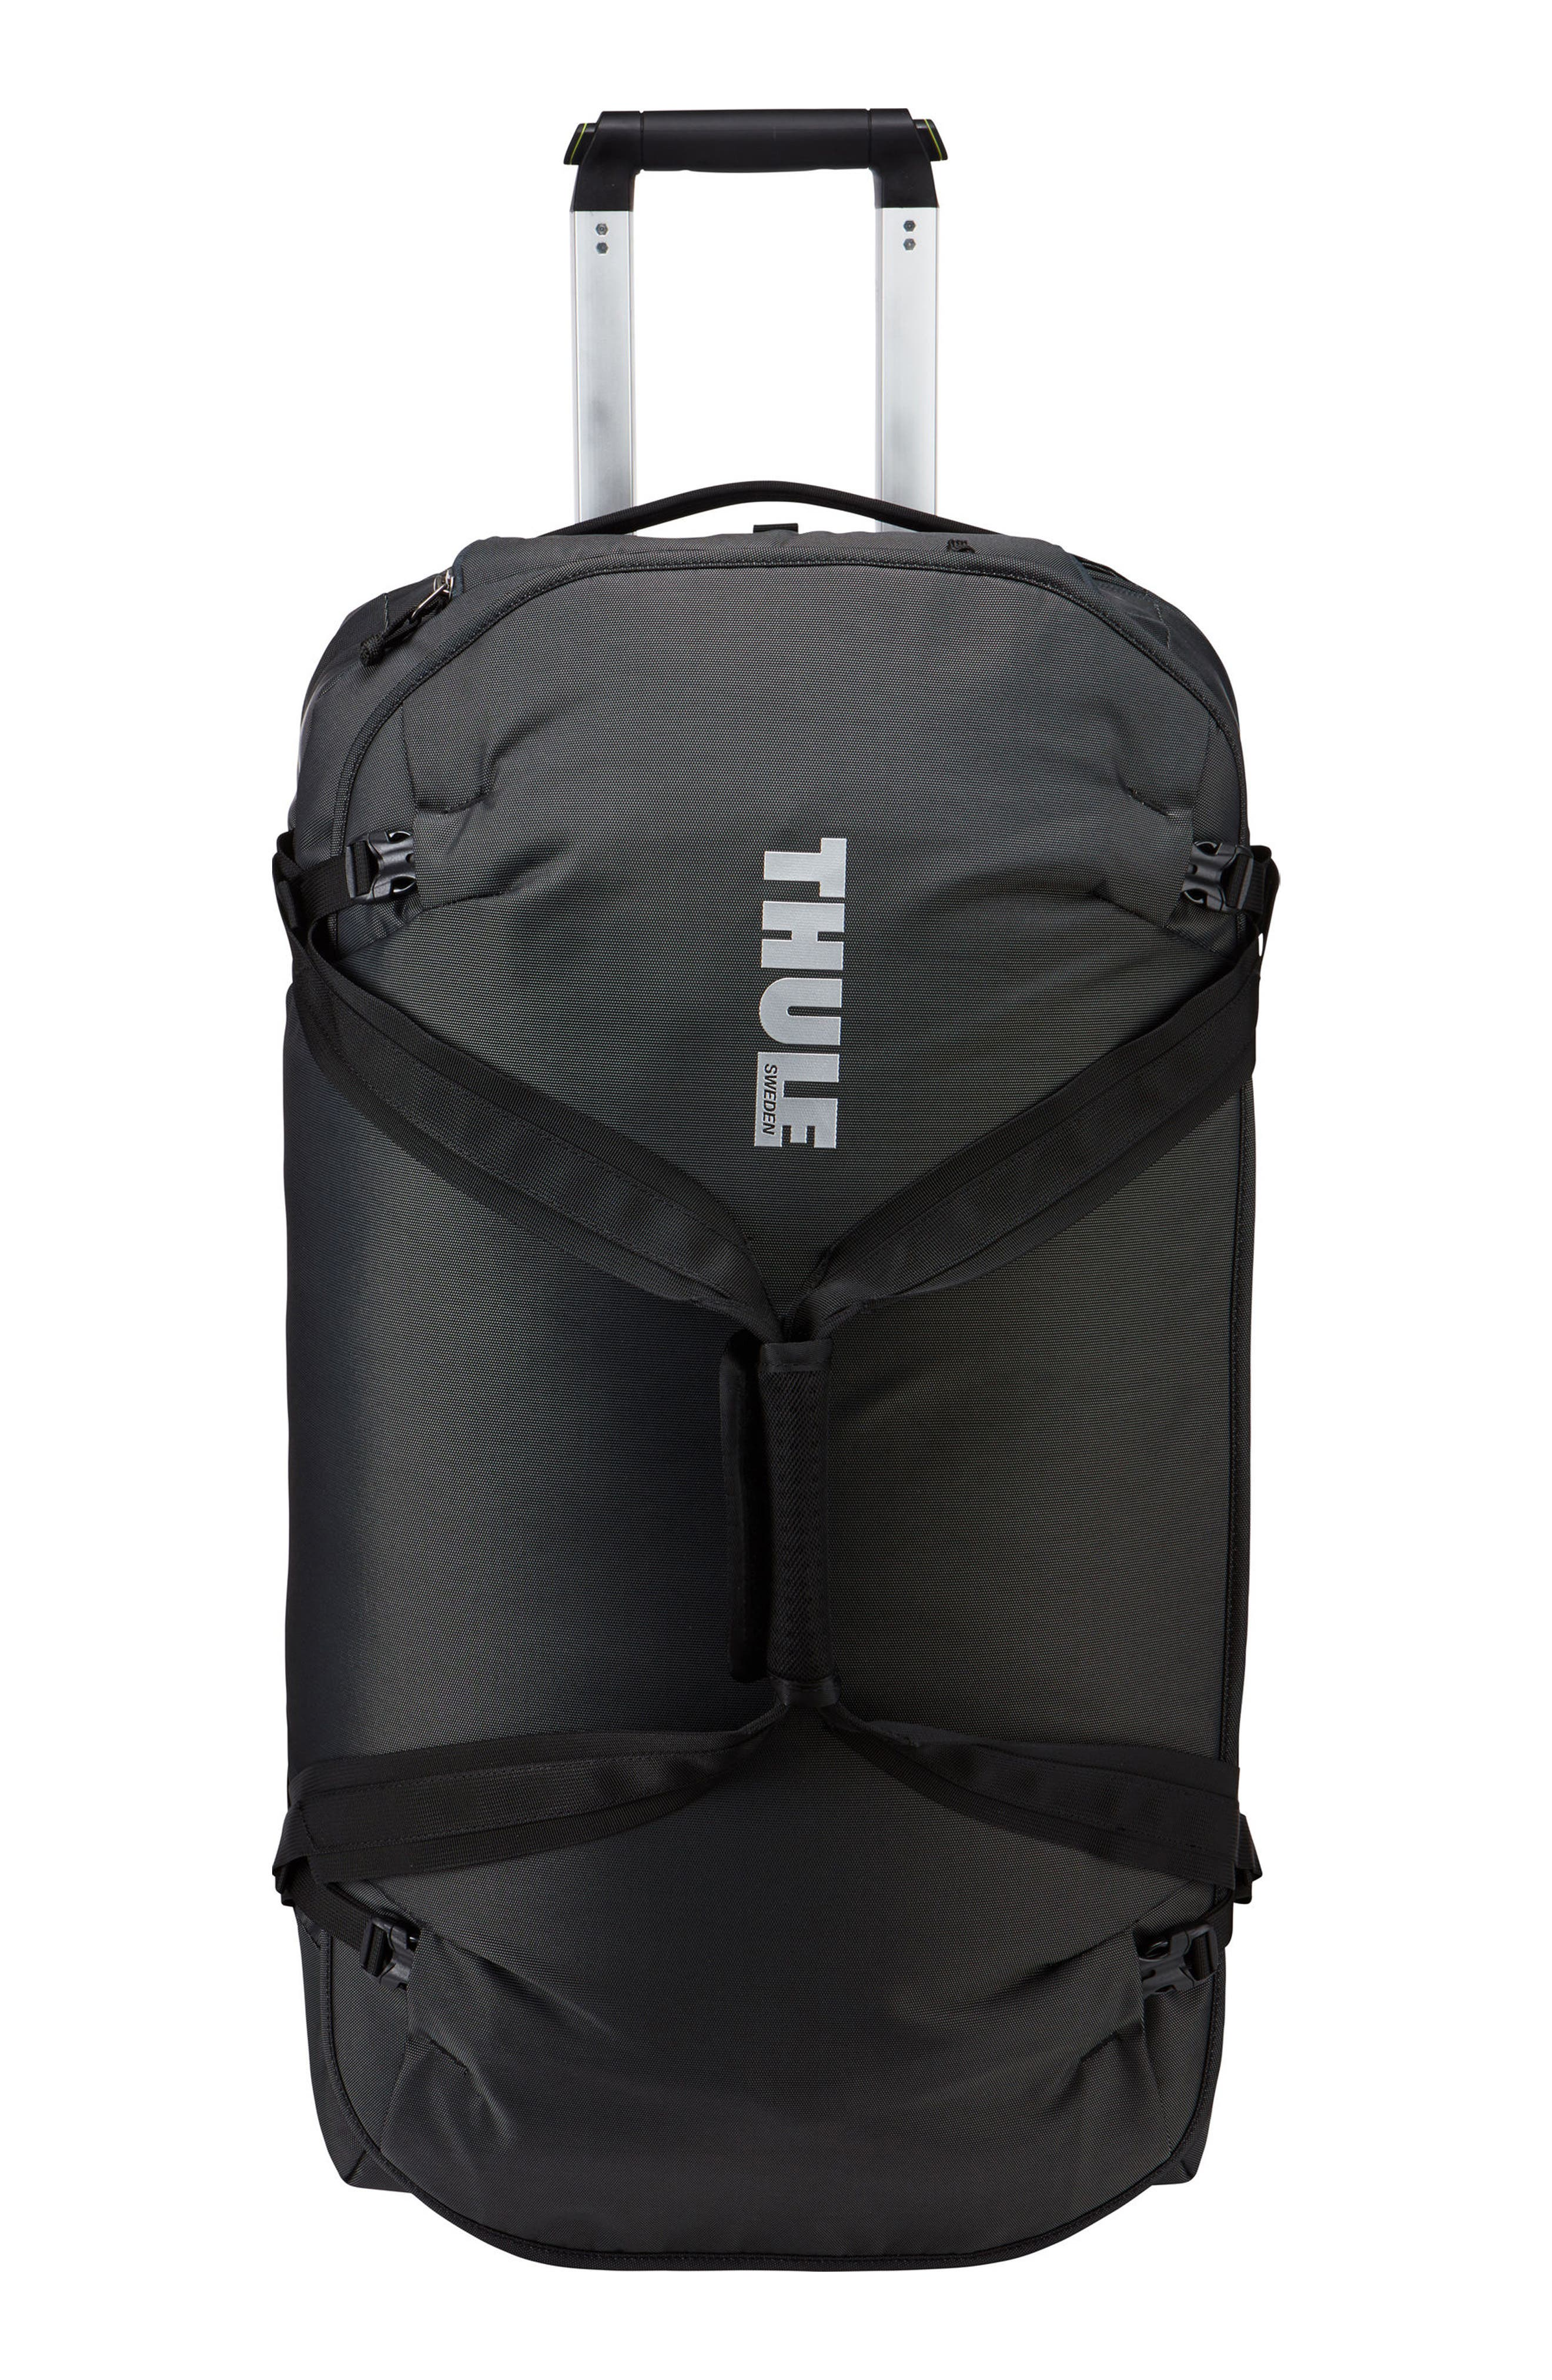 Alternate Image 1 Selected - Thule Subterra 28-Inch Suitcase